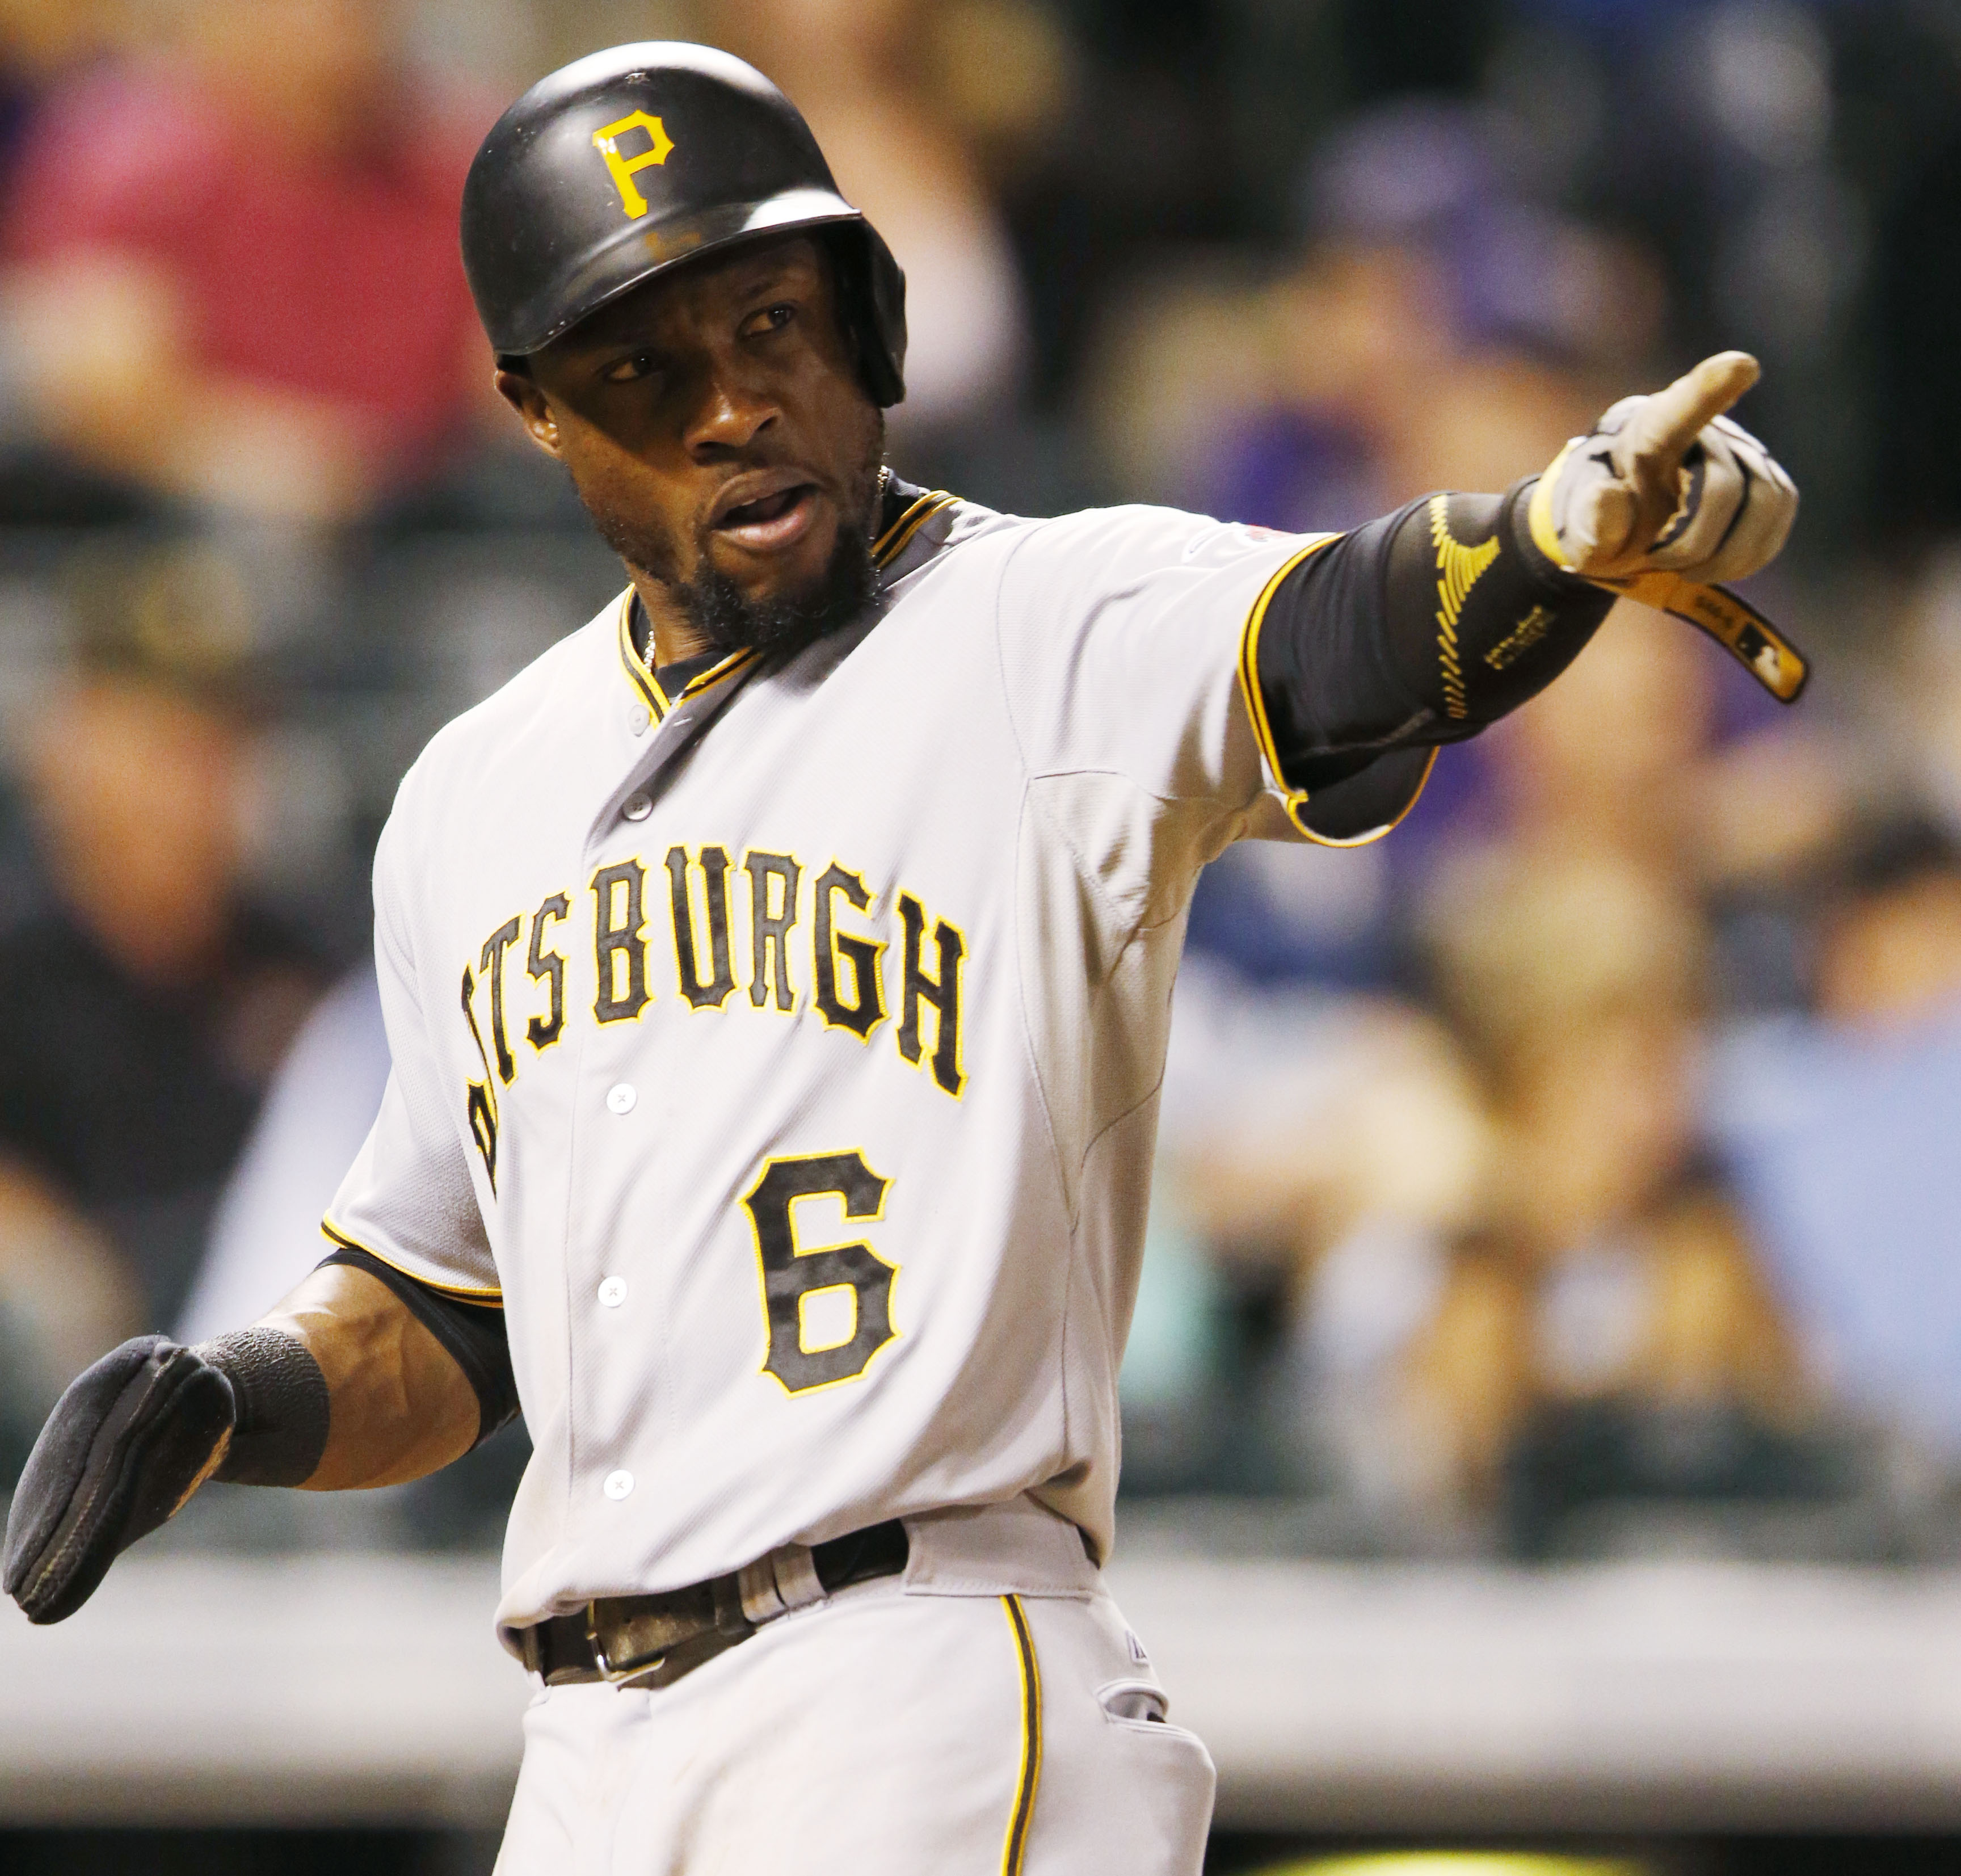 Pittsburgh Pirates' Starling Marte points to Aramis Ramirez after he singled to drive in Marte against the Colorado Rockies in the ninth inning of a baseball game Monday, Sept. 21, 2015, in Denver. Pittsburgh won 9-3. (AP Photo/David Zalubowski)